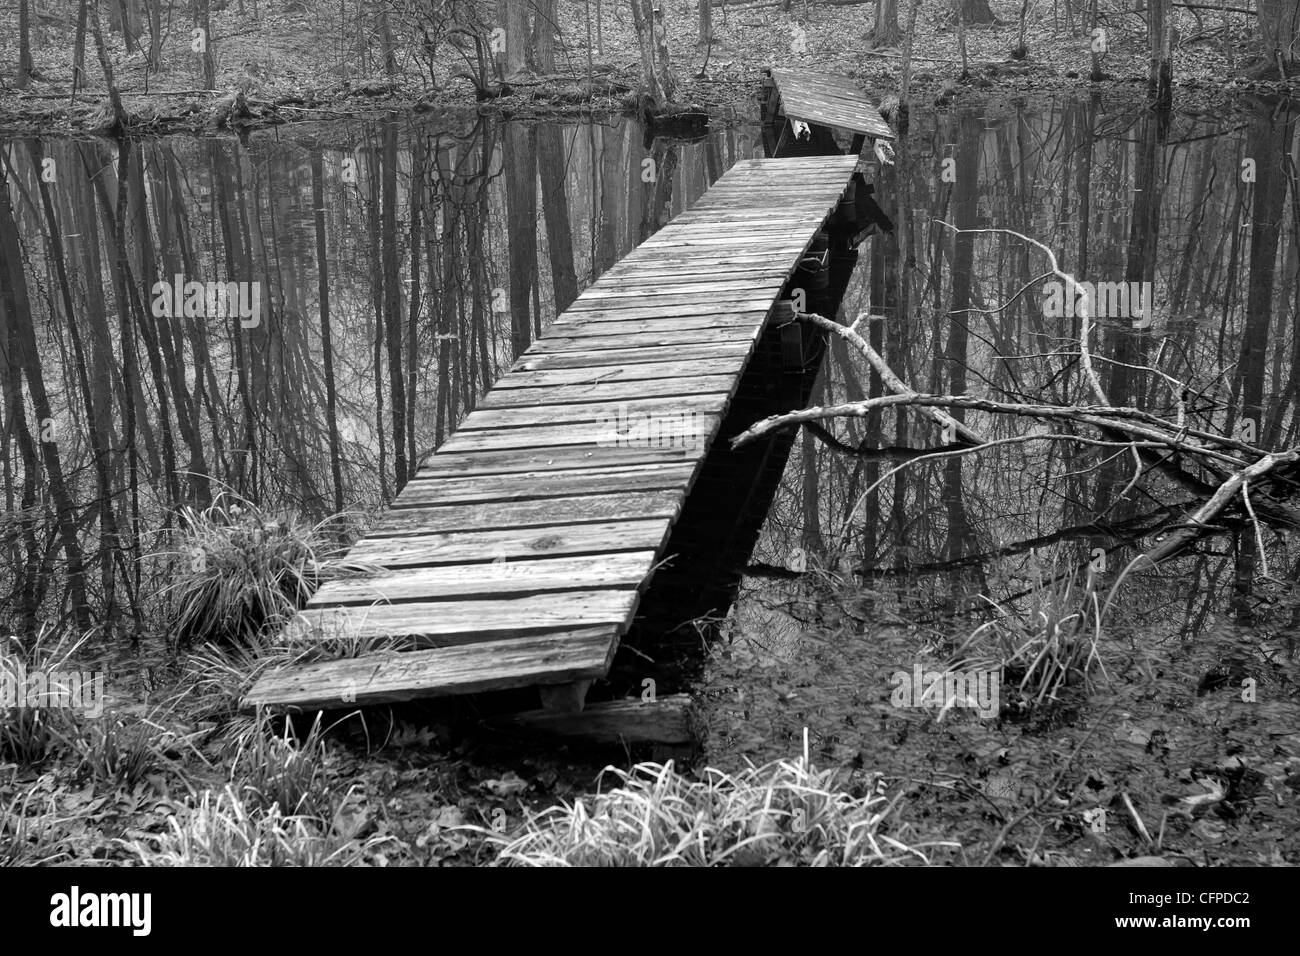 A wooden footbridge across an ethereal swamp in black and white, Connecticut USA Stock Photo